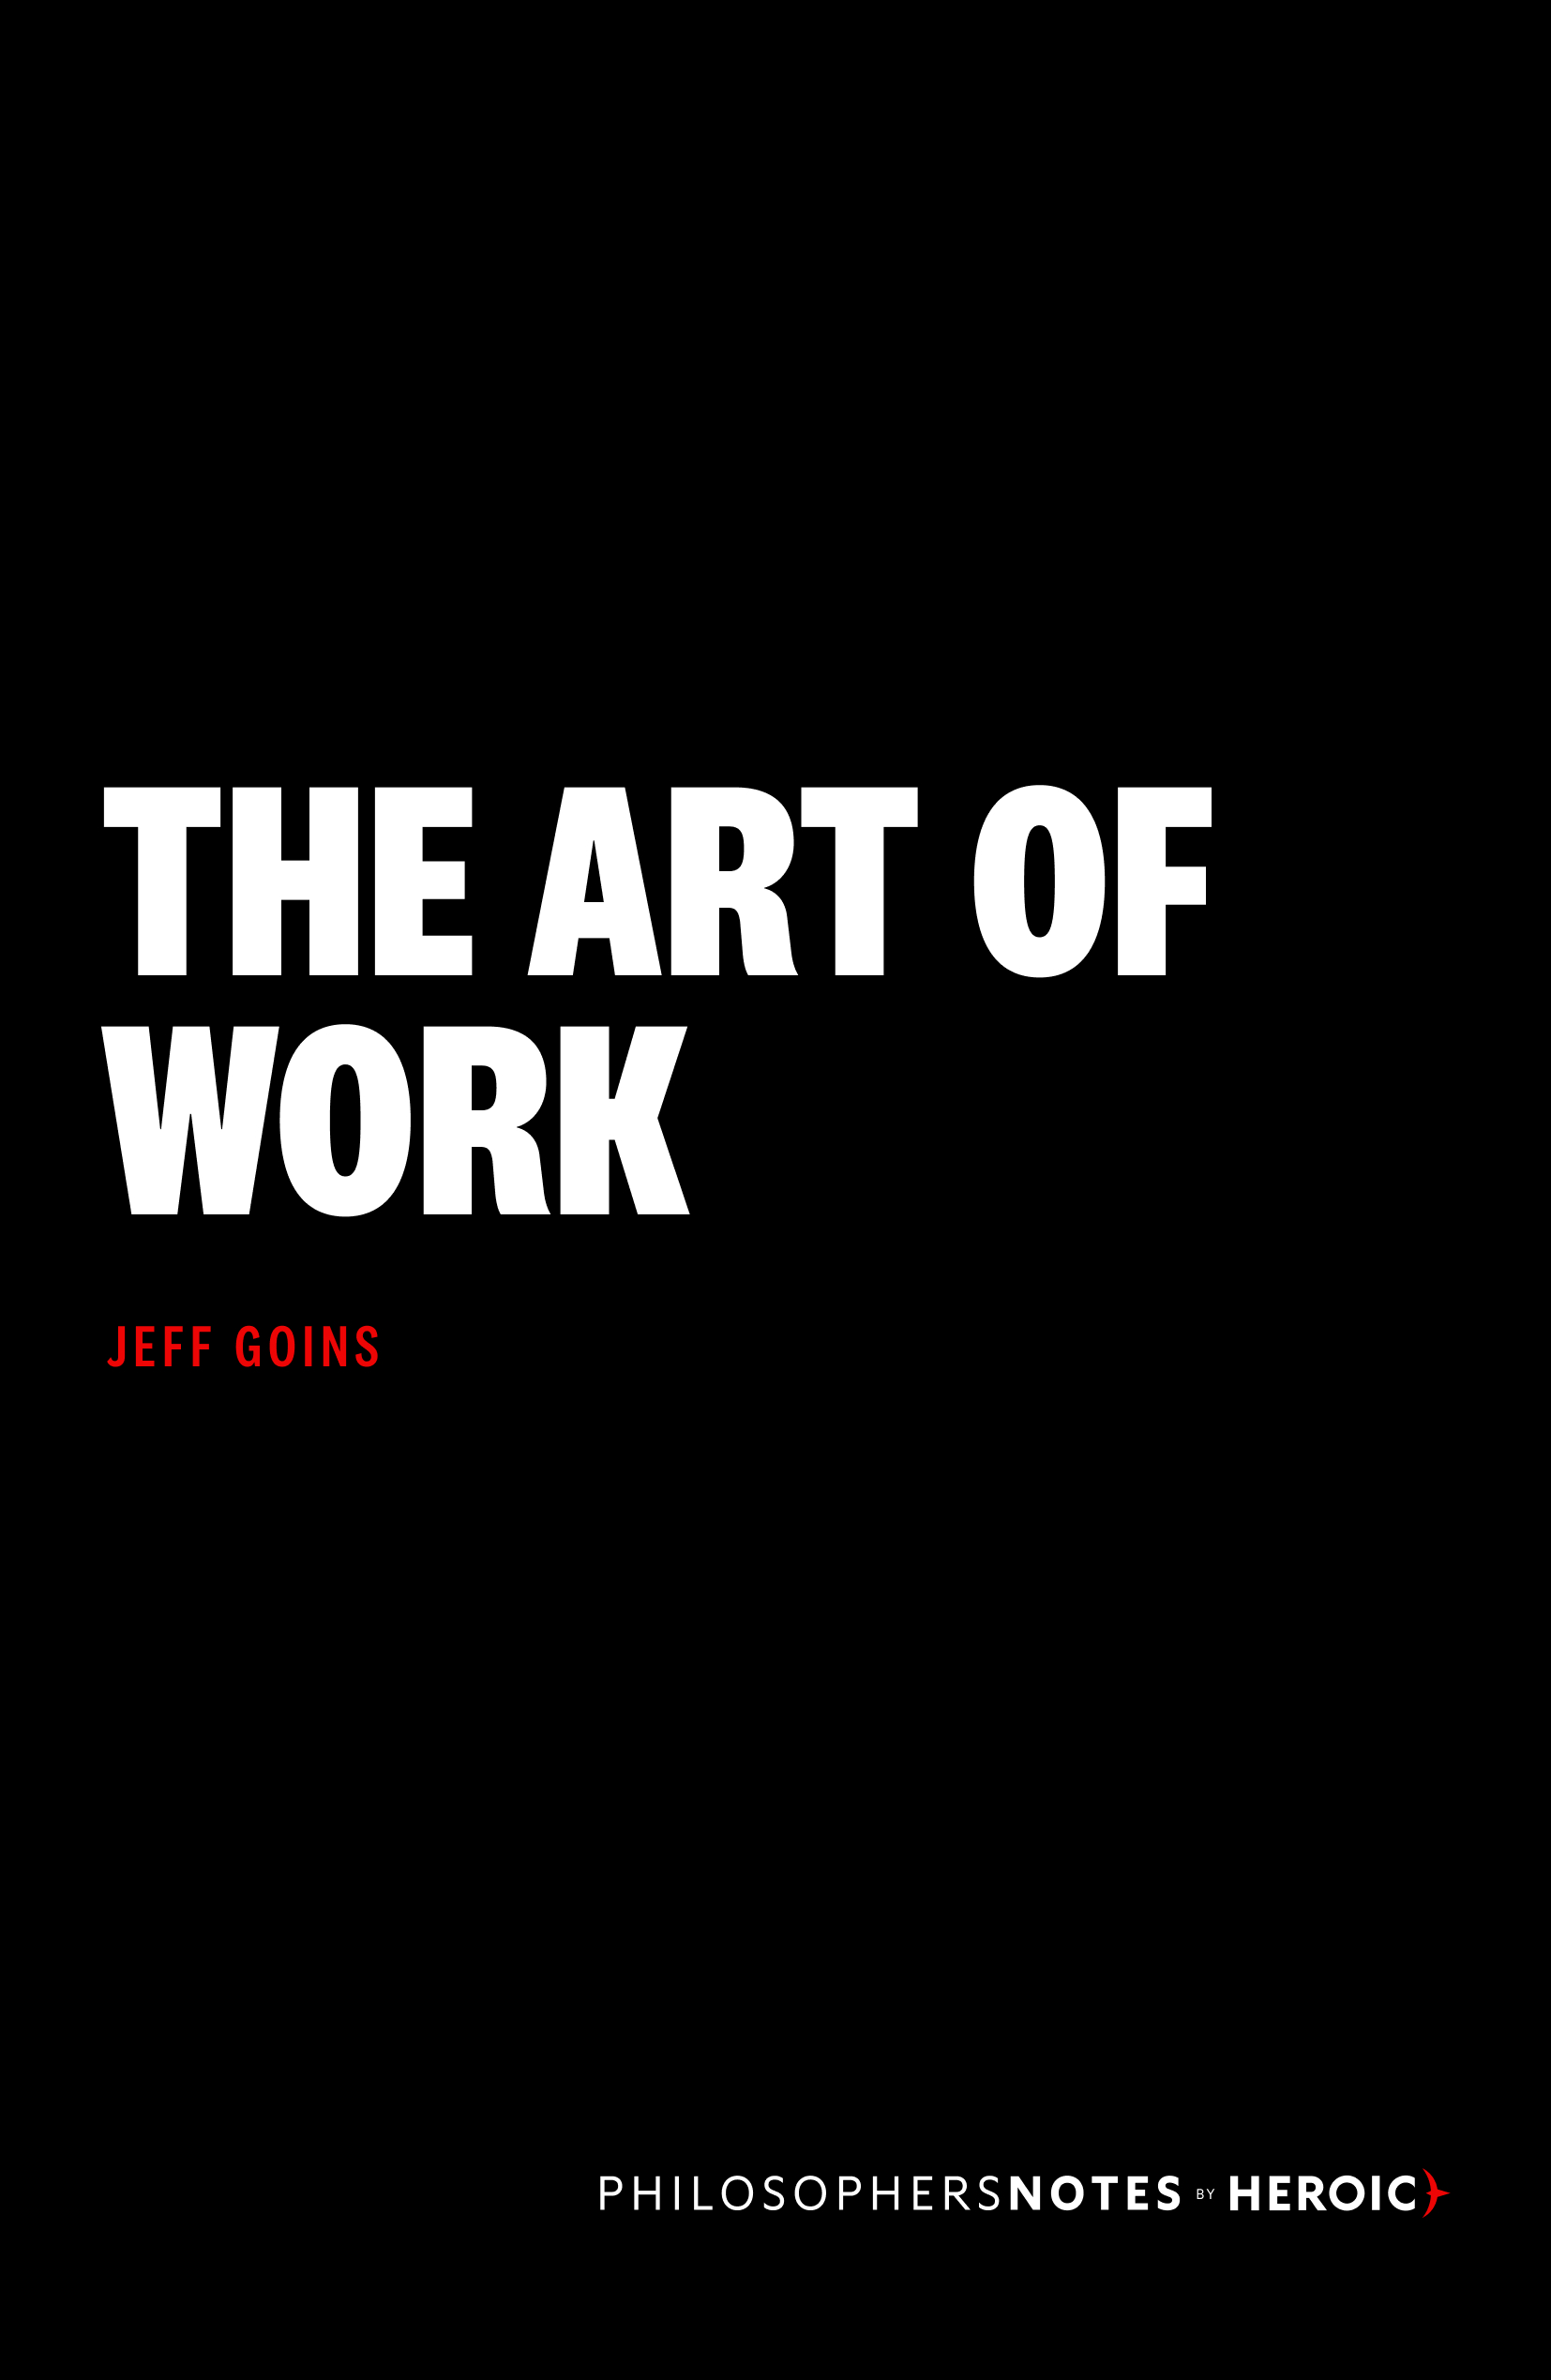 The Art of Work